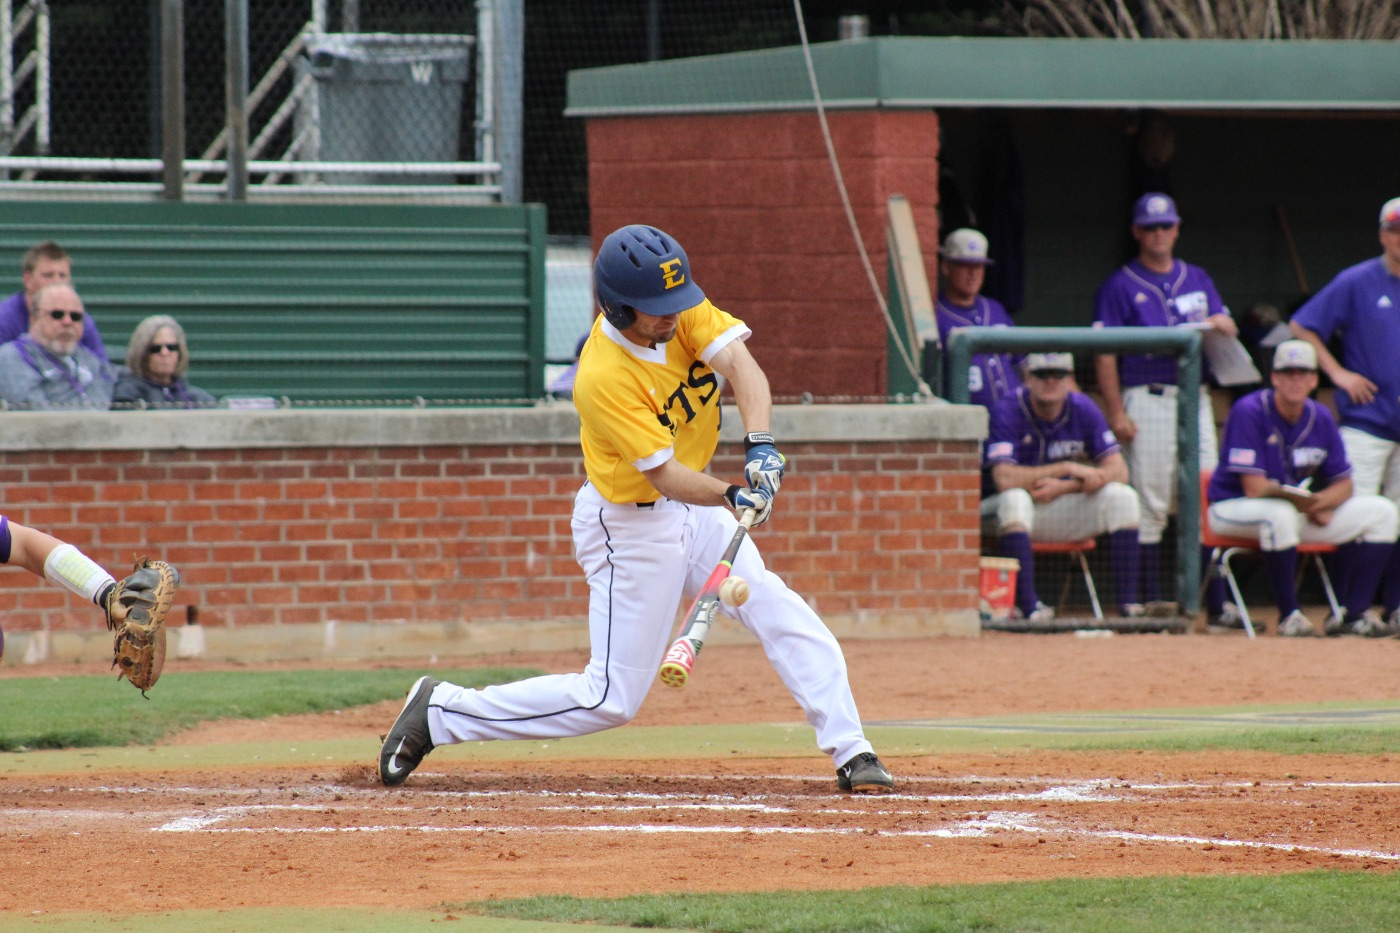 Backed by 13 hits, ETSU falls in rubber match to WCU